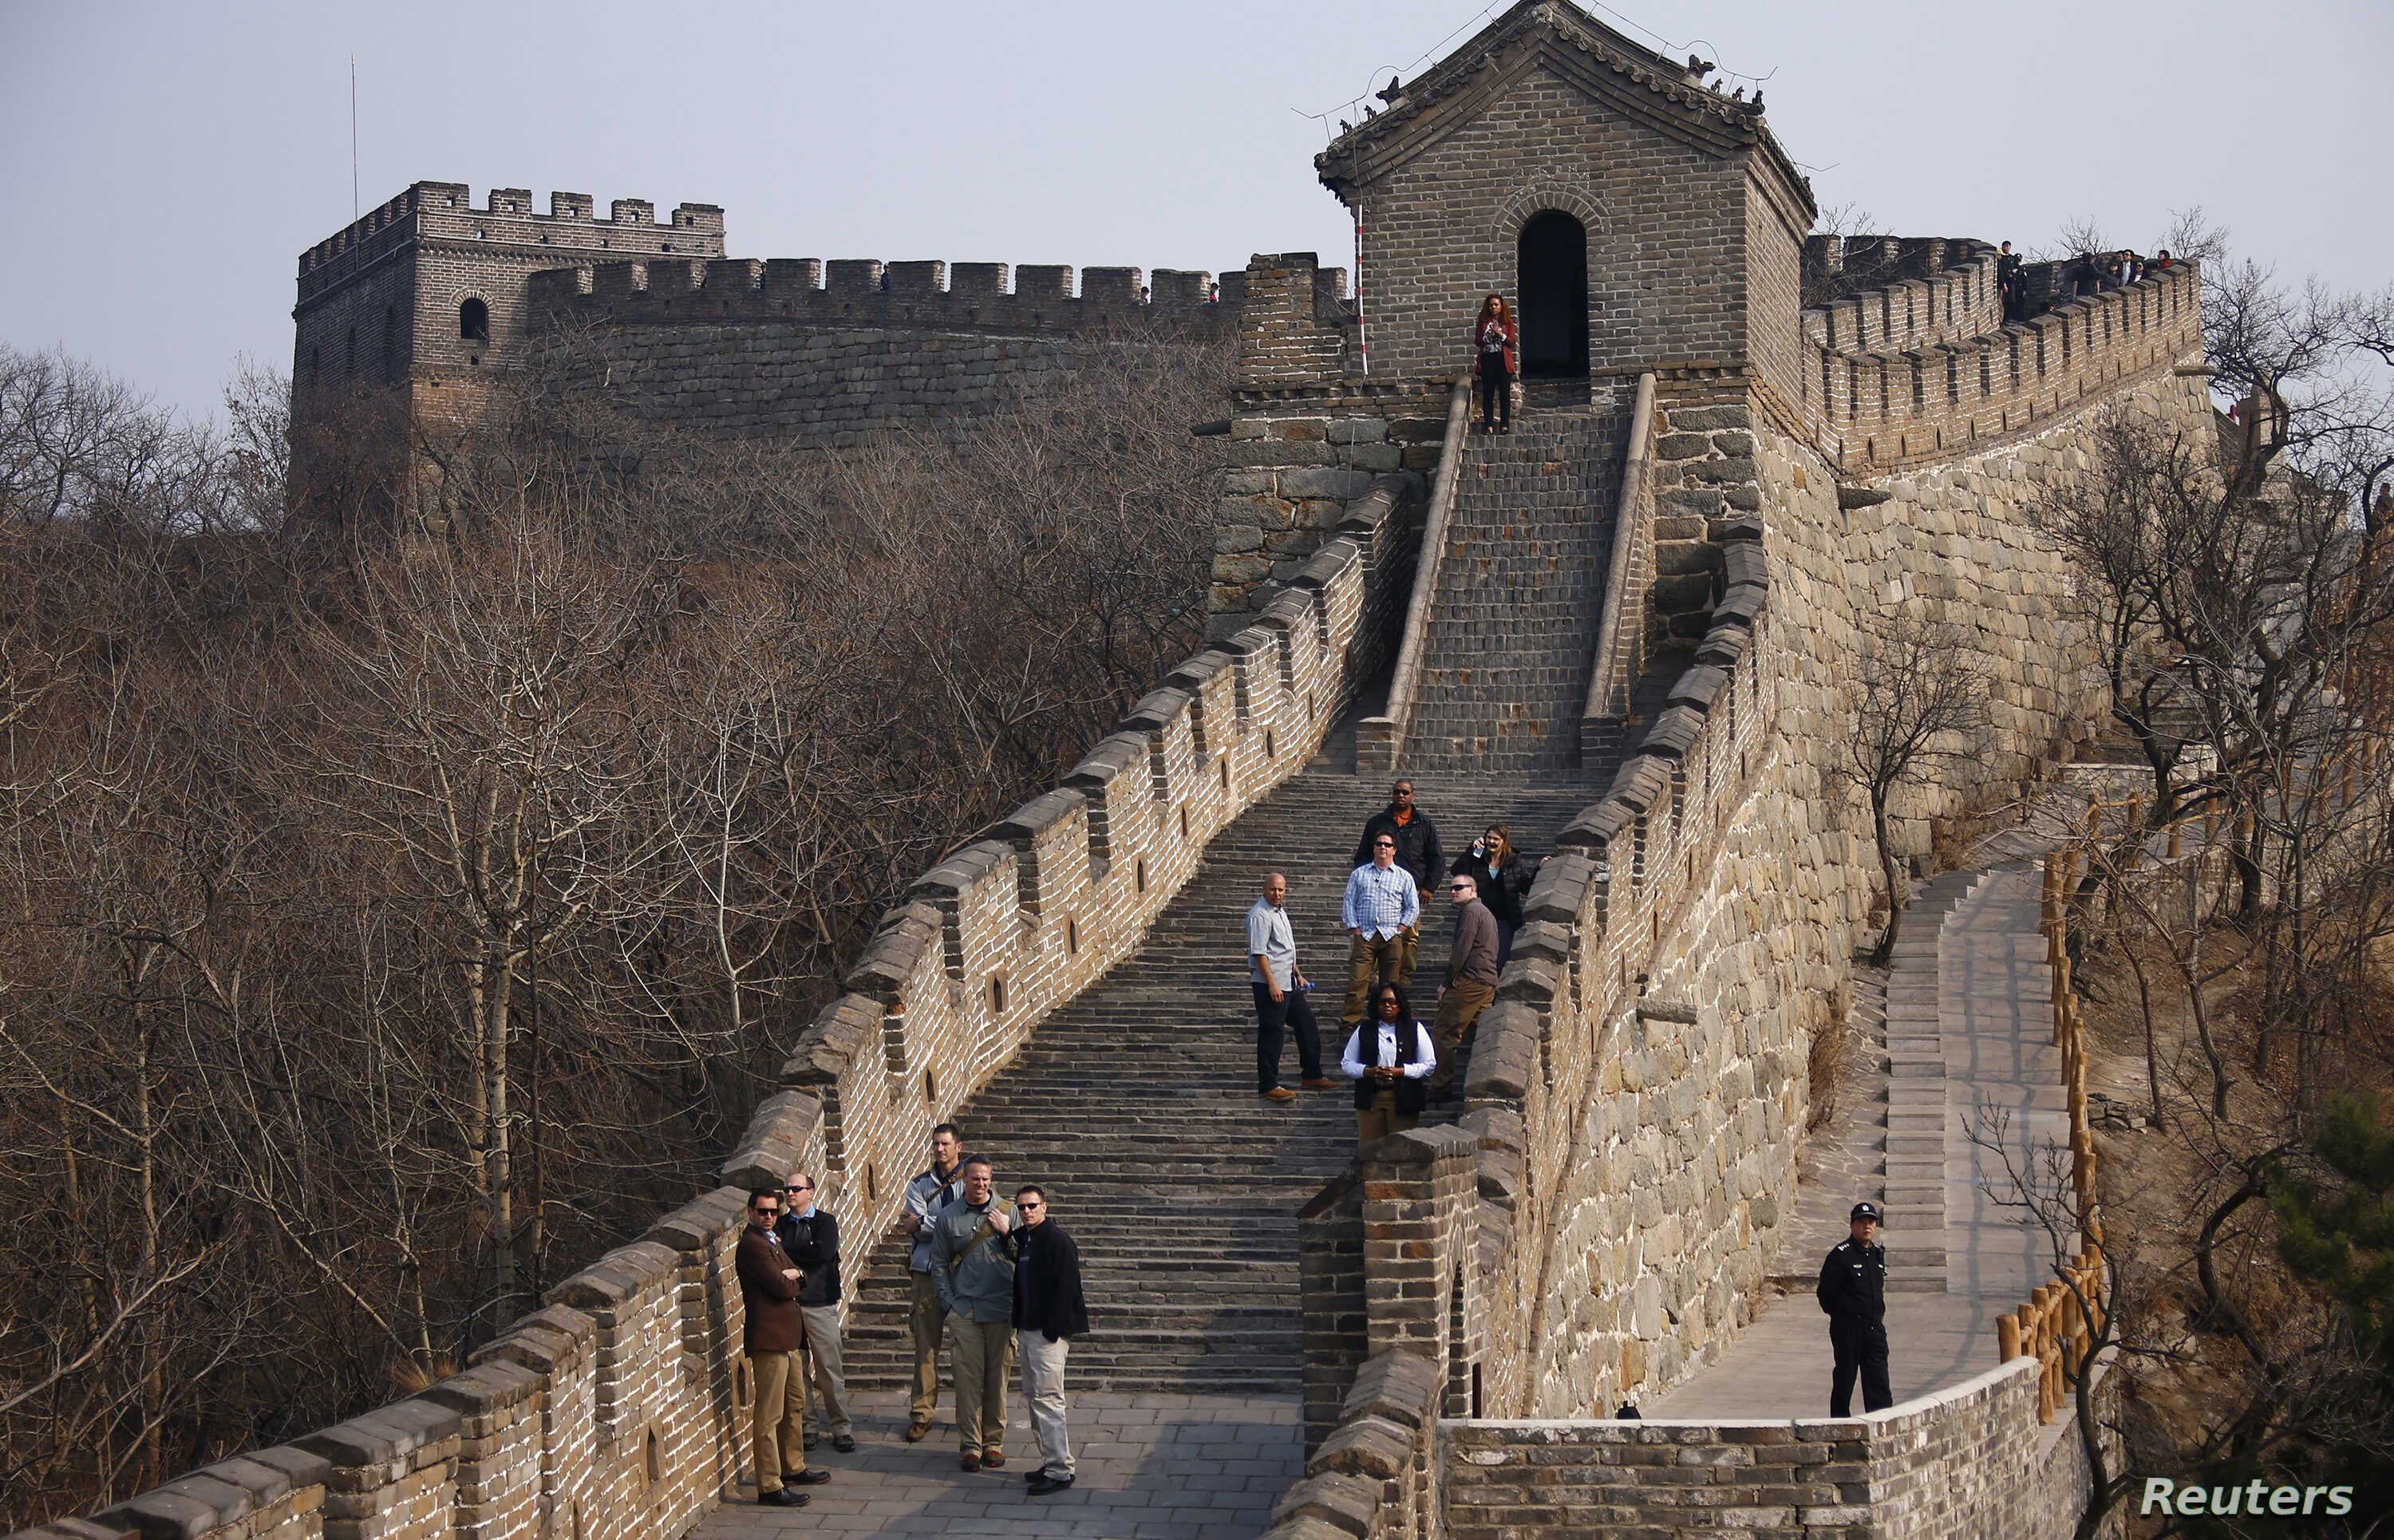 Section Of Great Wall Of China Marred In Name Of Restoration Voice Of America English